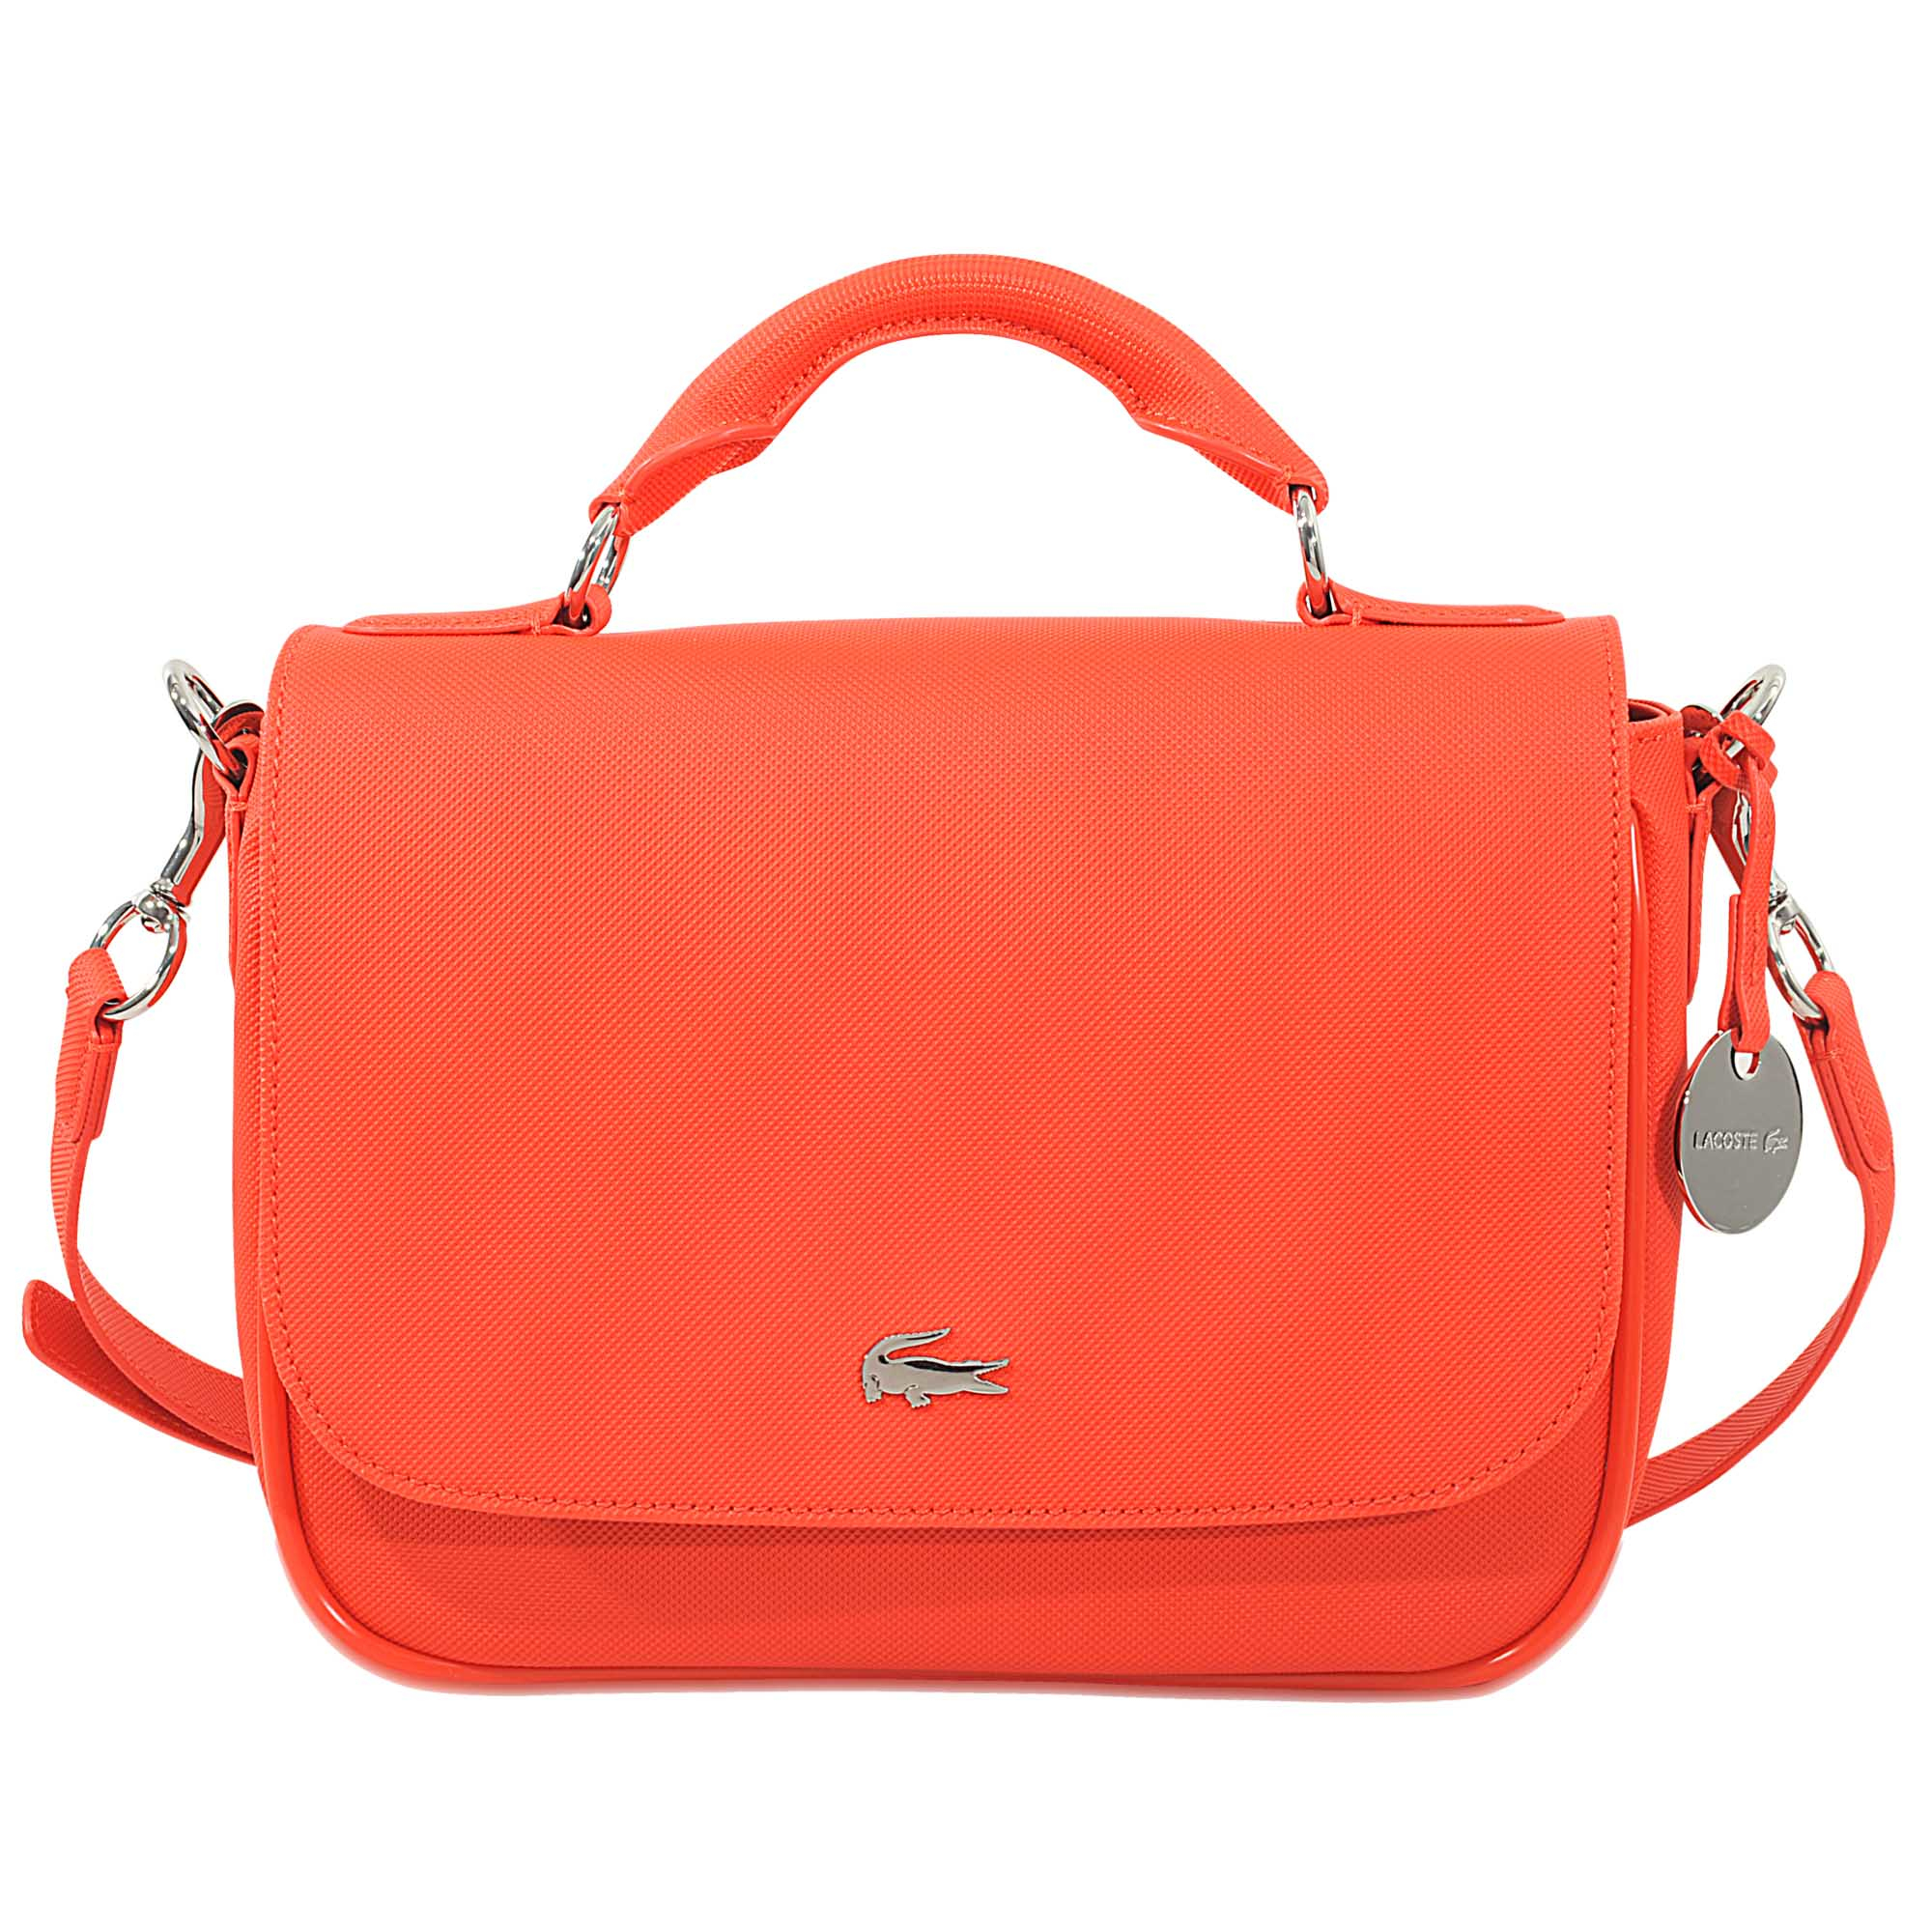 af3485998df326 Lyst - Lacoste Daily Classic Small Satchel Bag in Orange